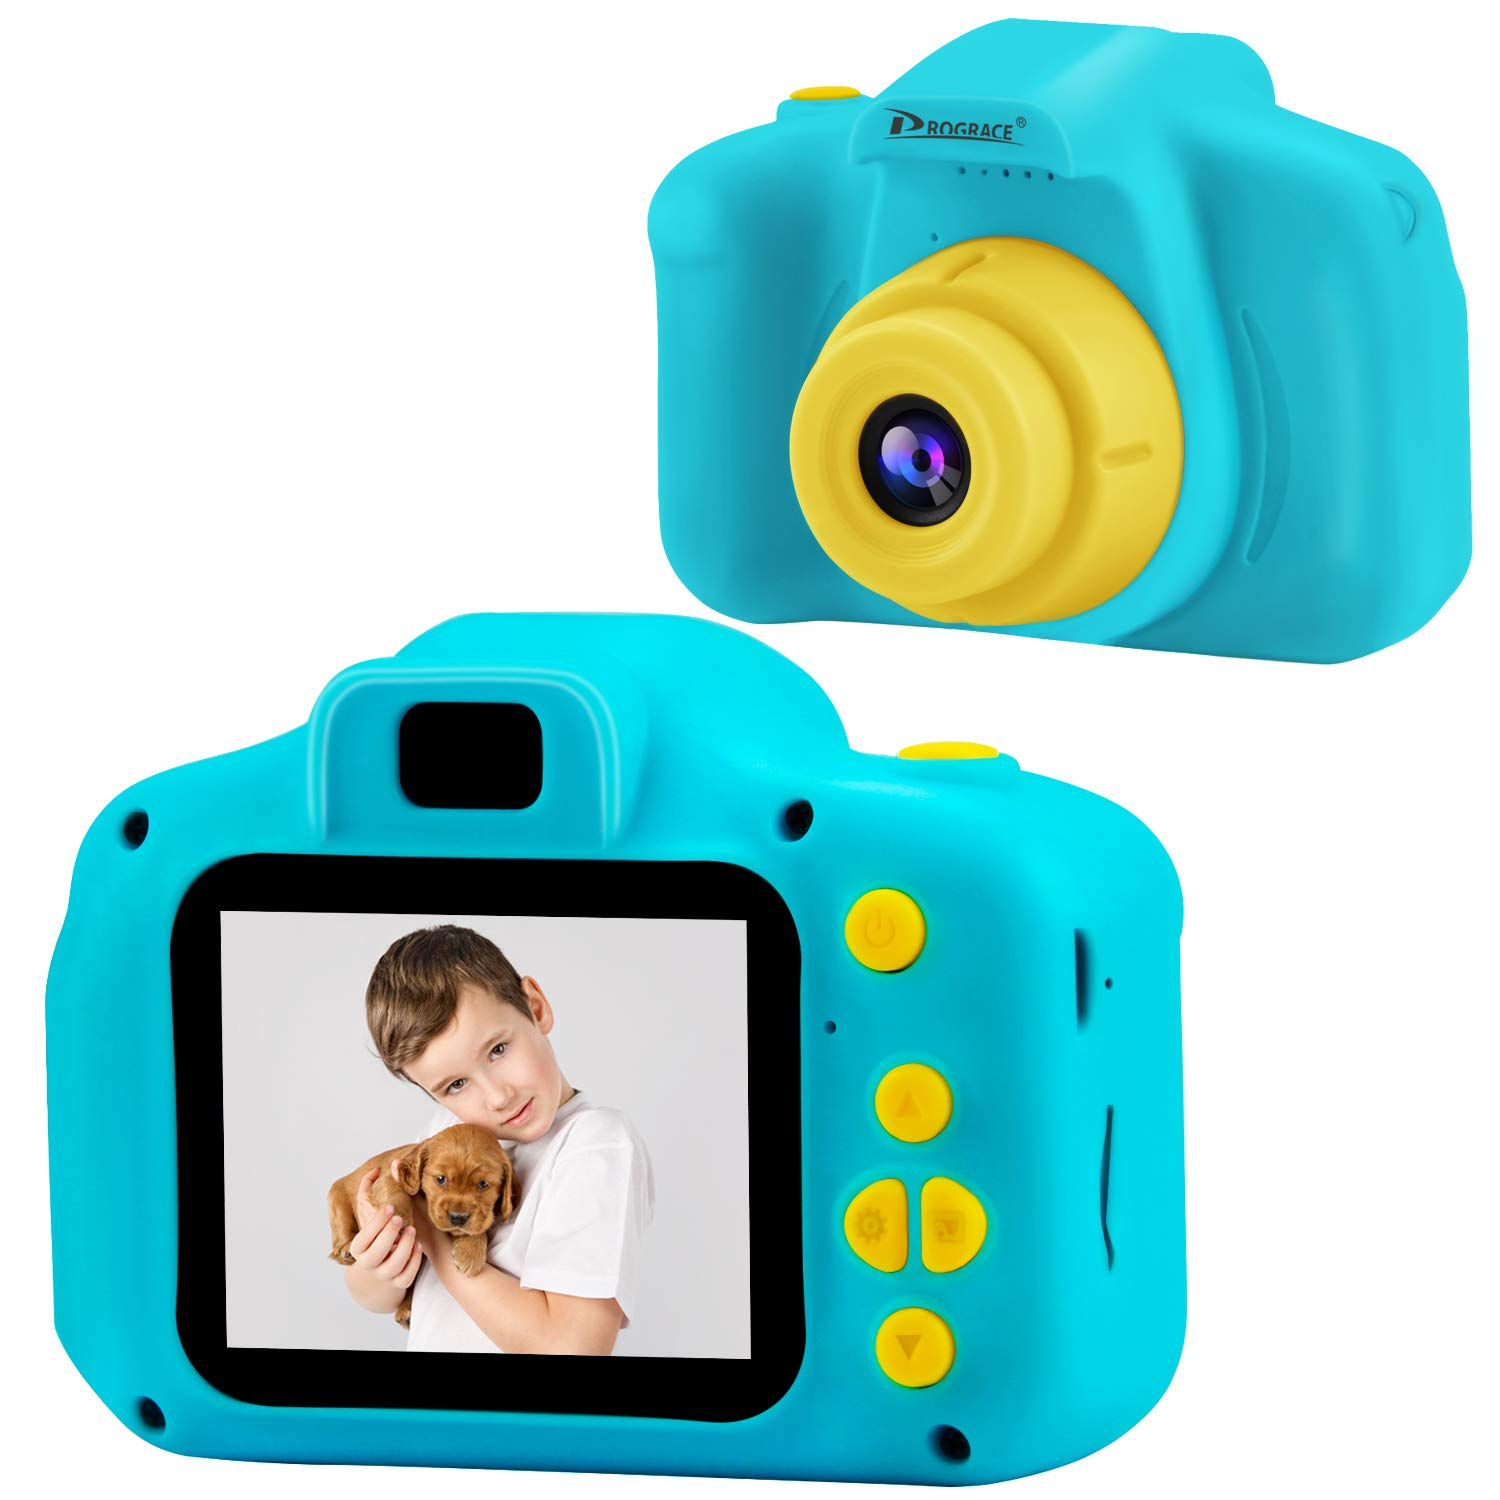 Good camera for kids